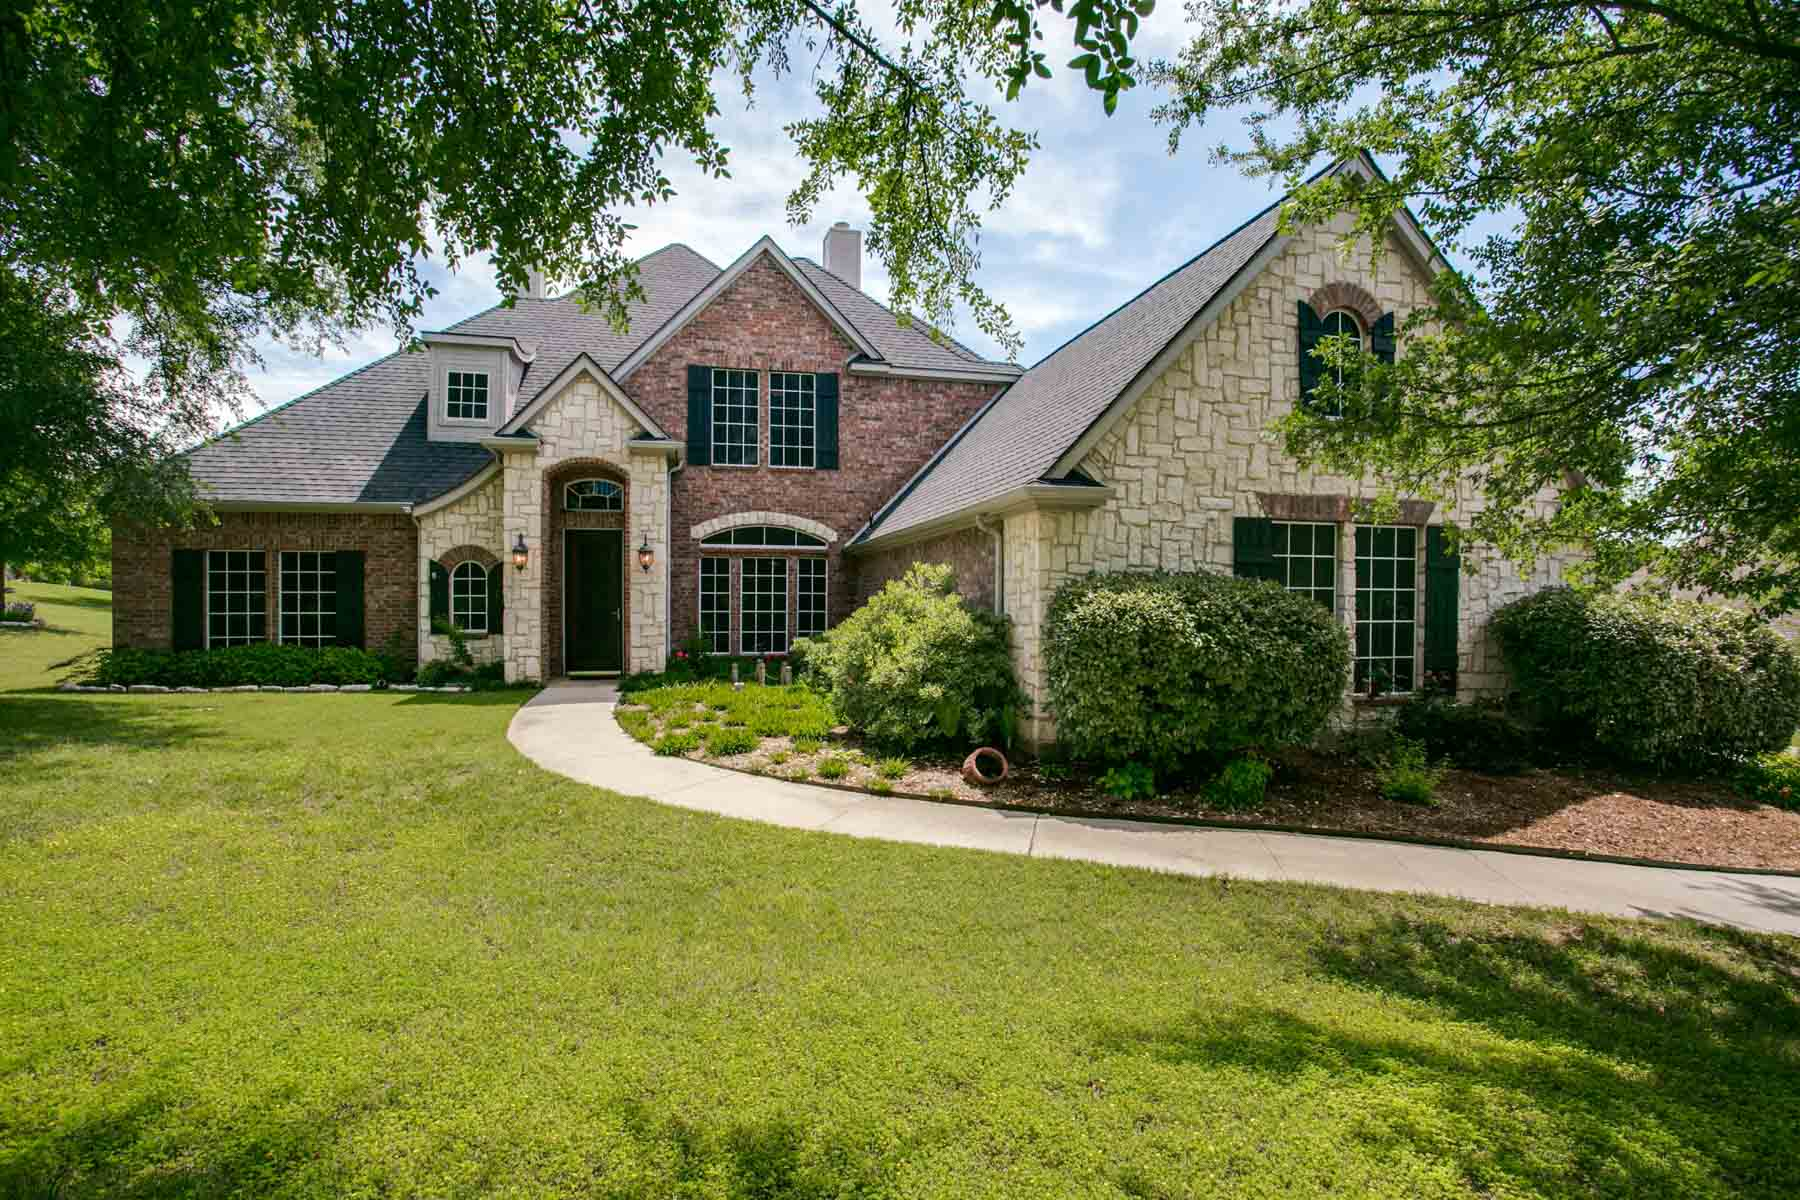 Single Family Home for Sale at One Acre Cul-De-Sac Location 4412 La Cantera Court Fort Worth, Texas, 76108 United States